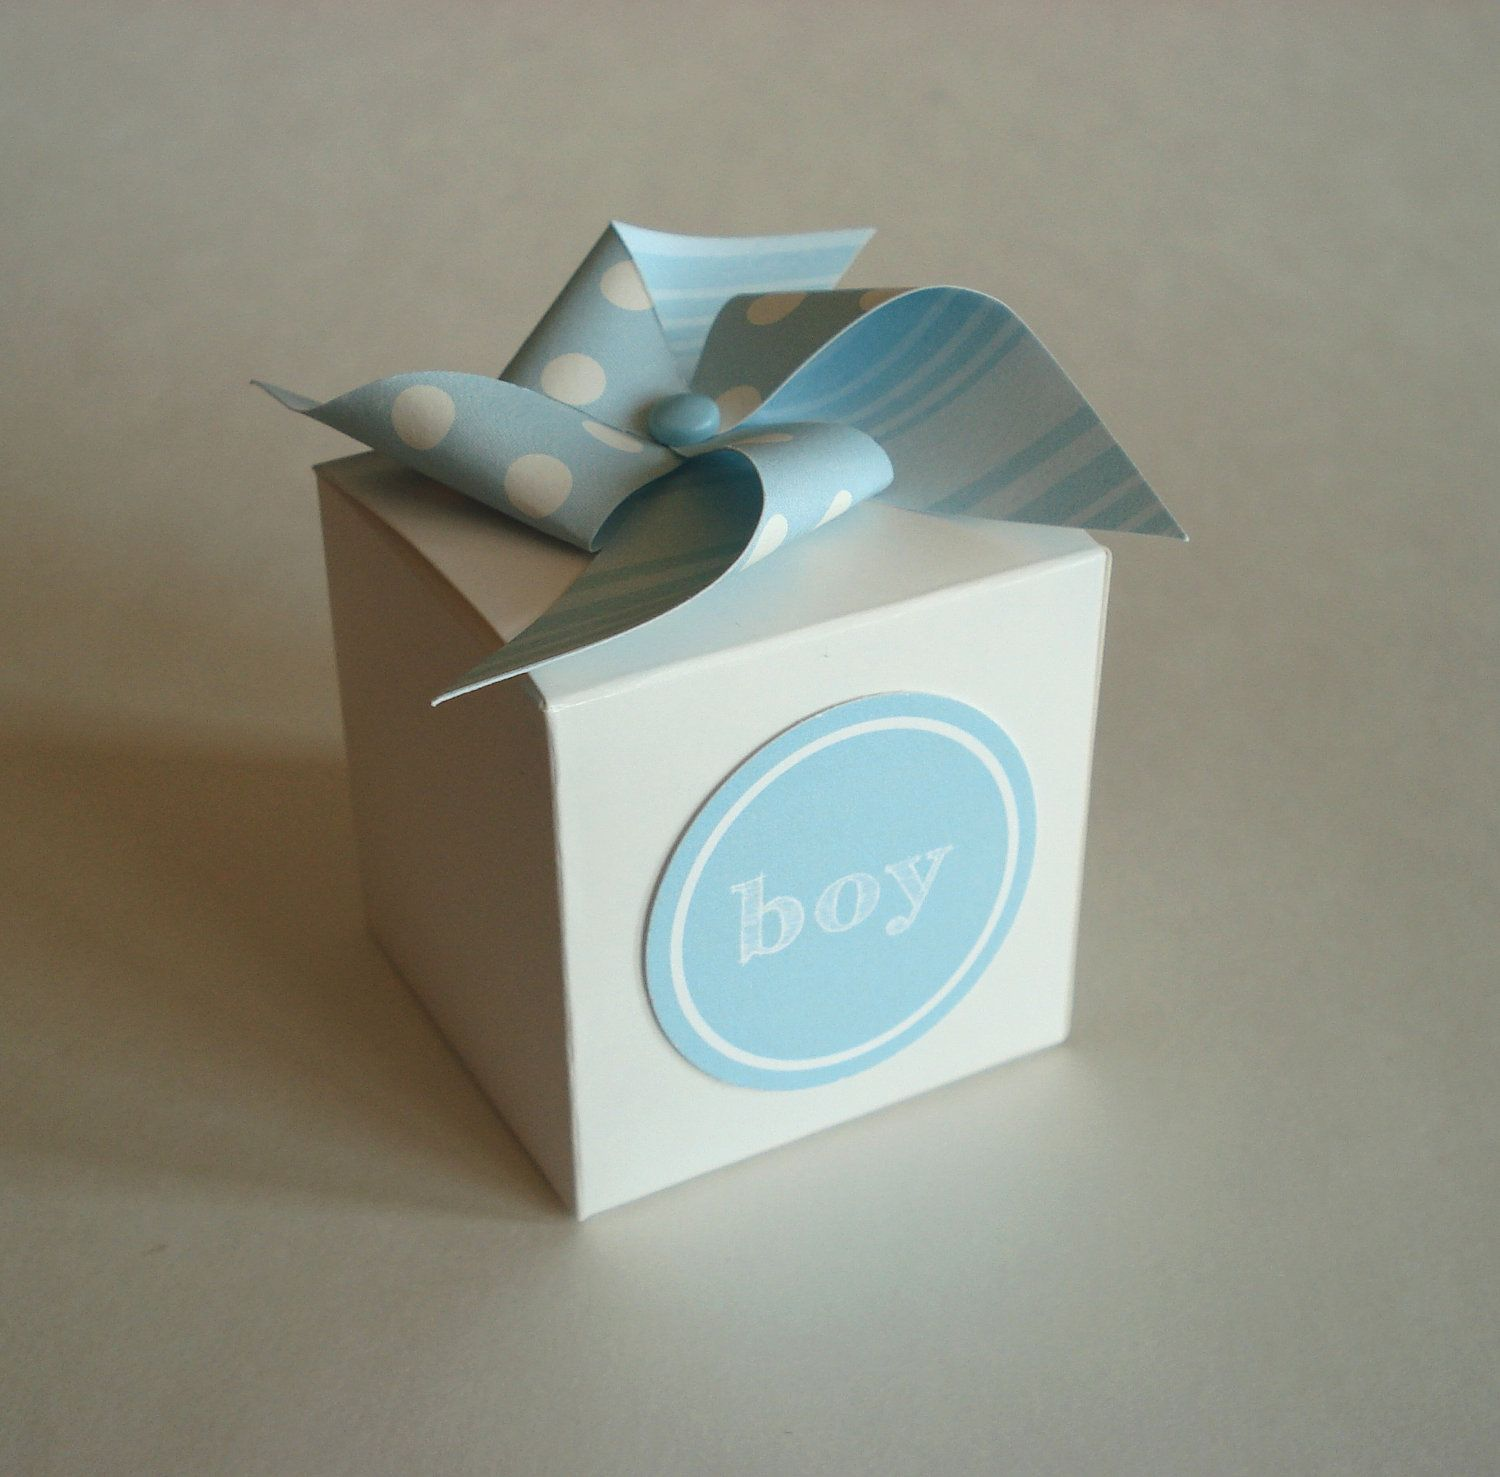 Boxes For Baby Shower Favors: 12 Baby Shower Favor Box With Pinwheel